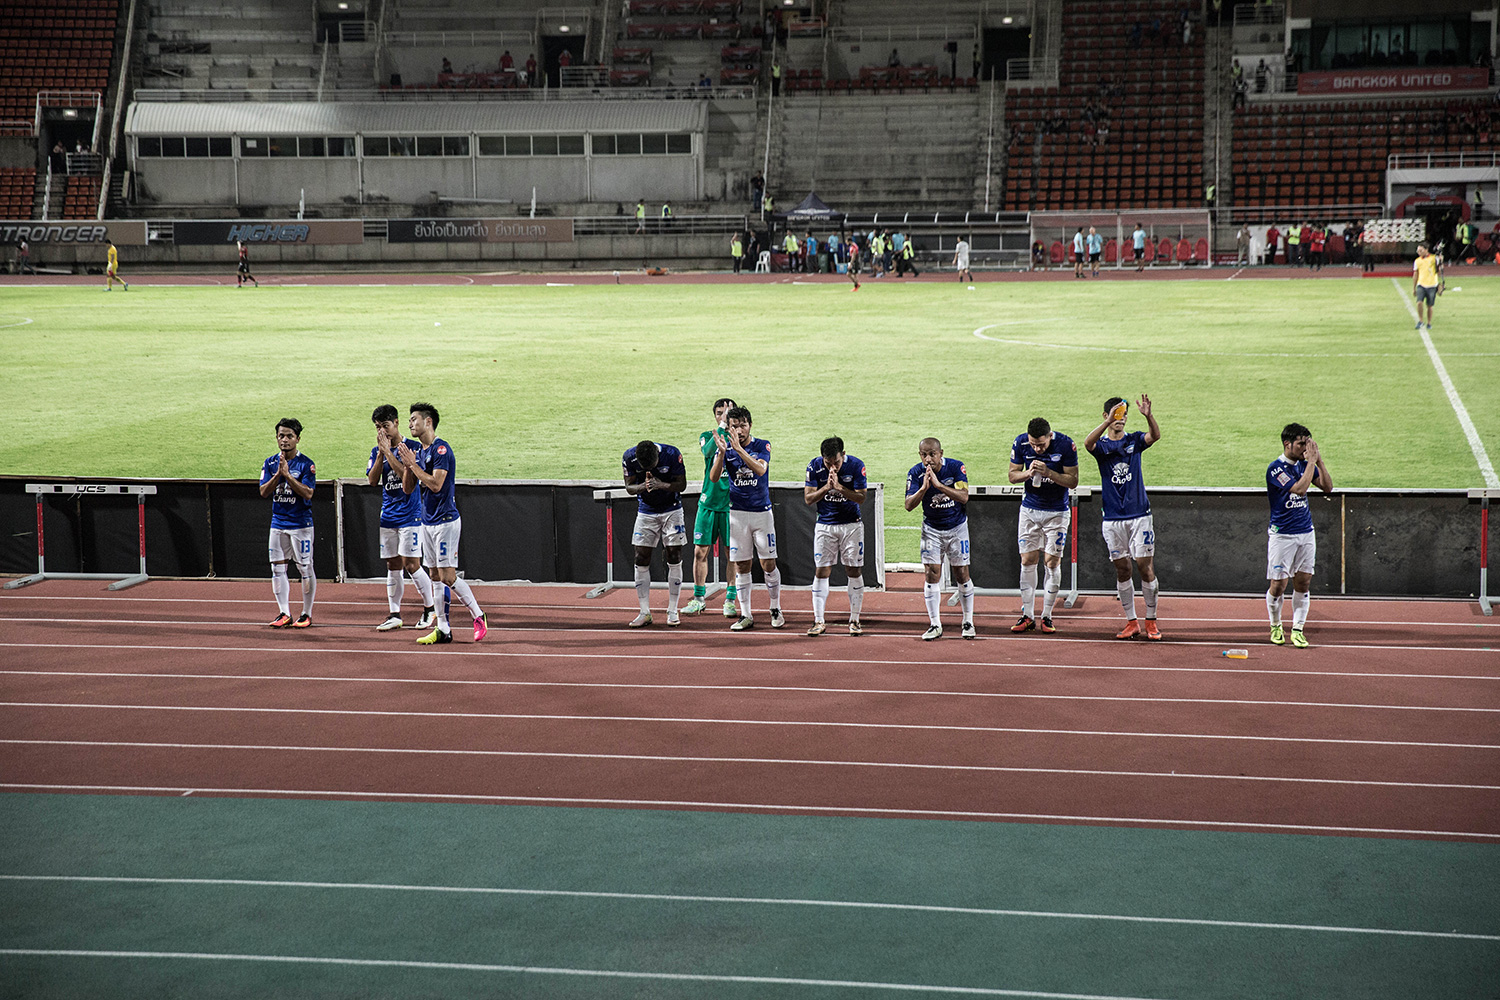 bangkokunited-vs-chonburi-29